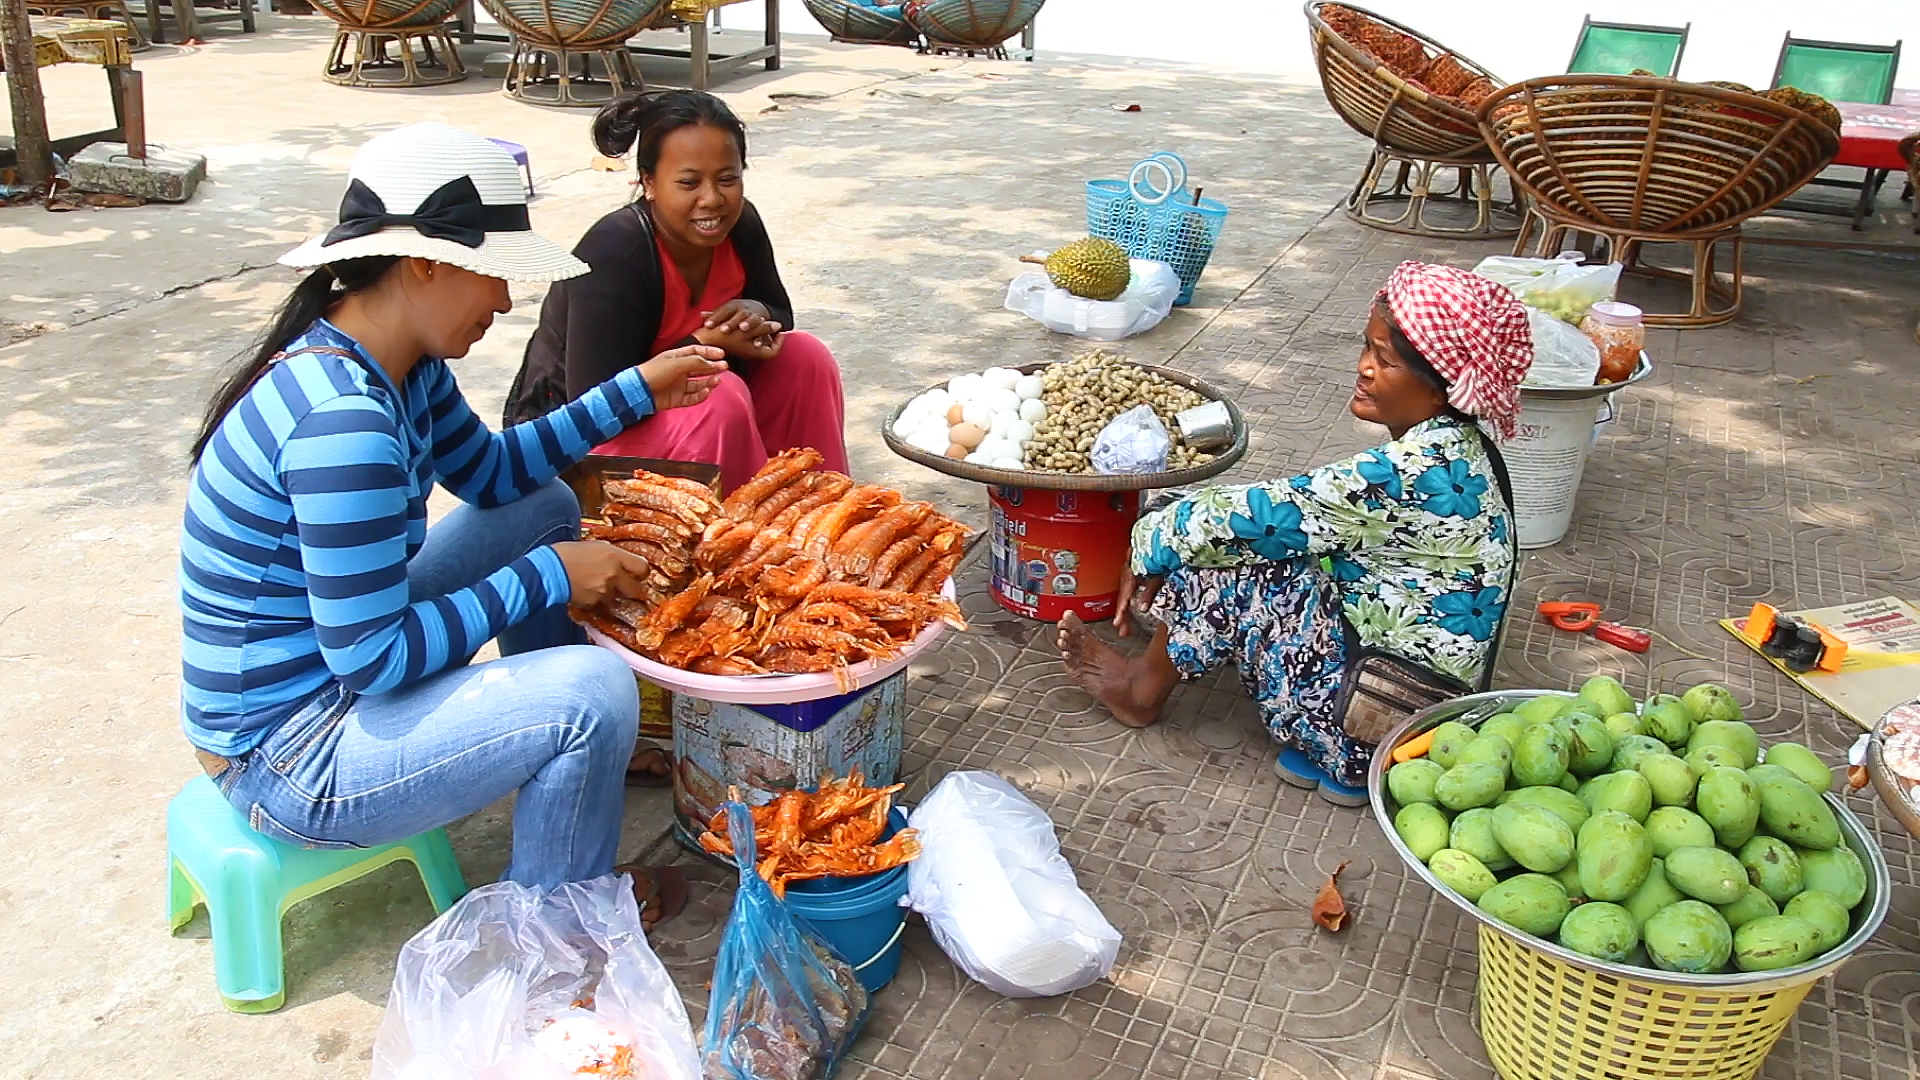 cambodge, sihanoukville, cambodgienne, crevettes, plage